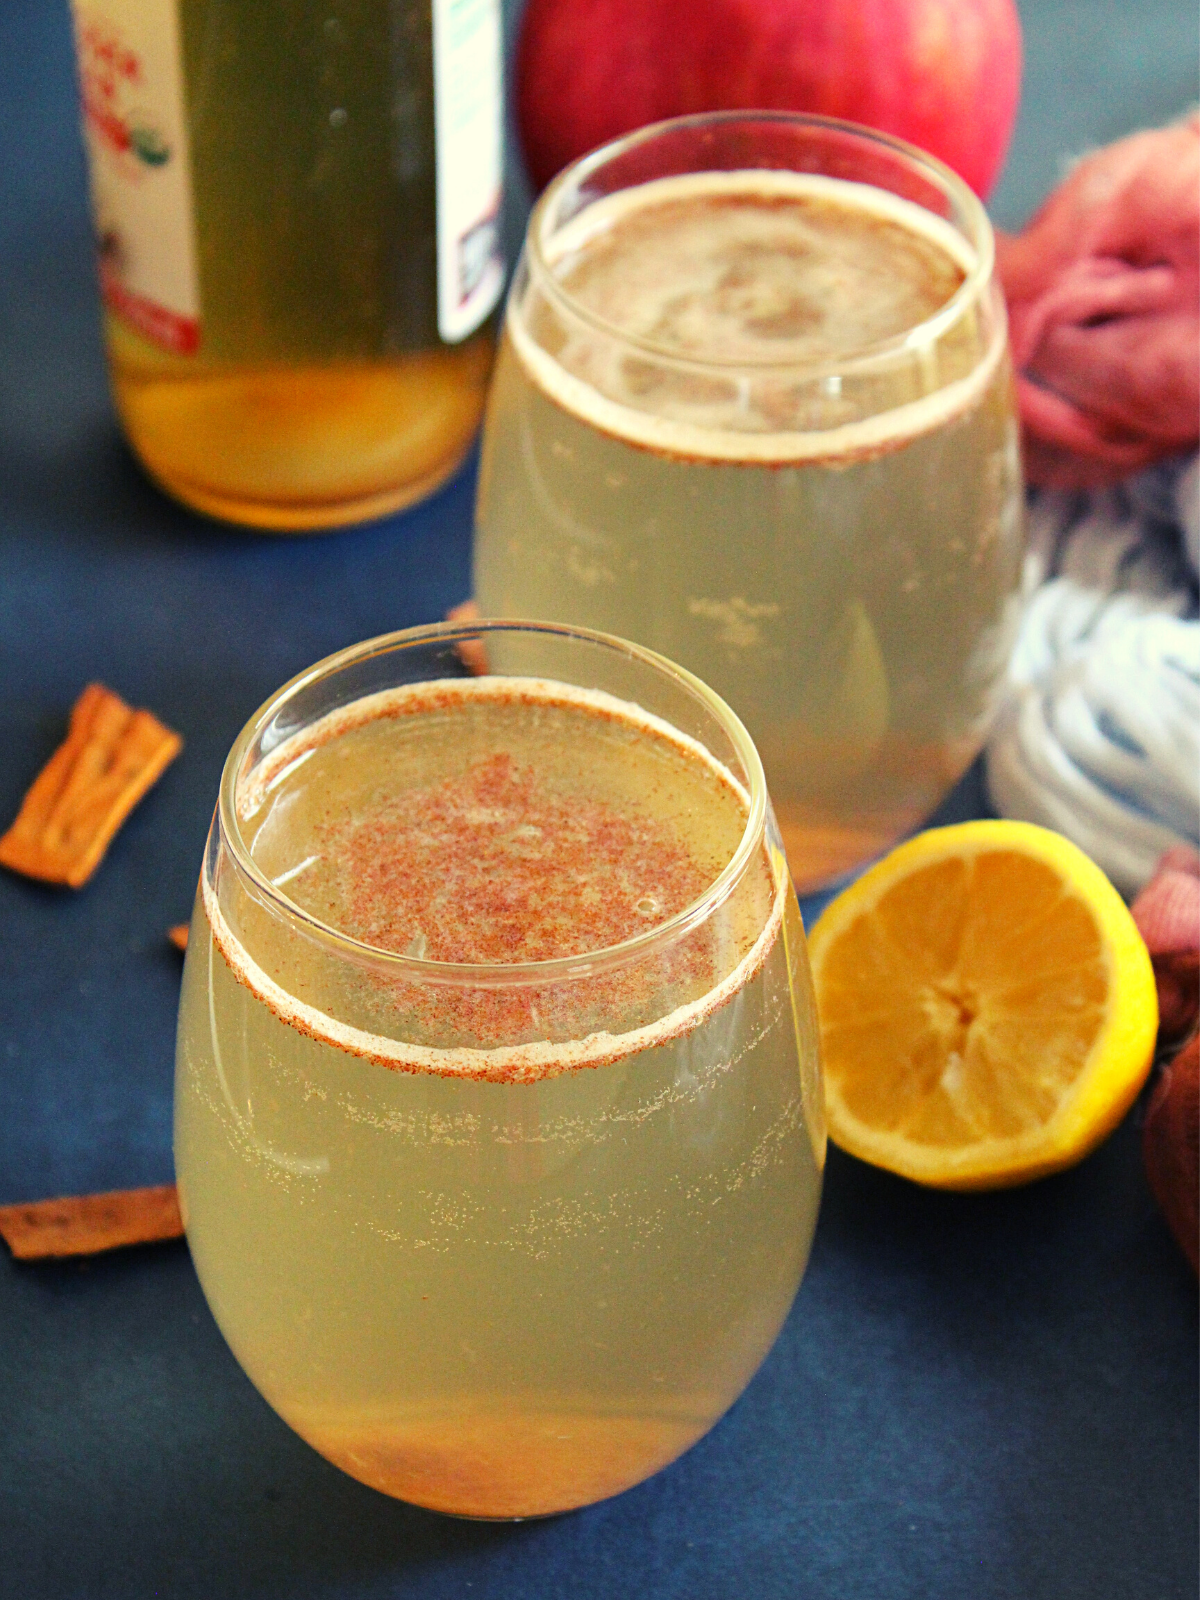 apple cider vinegar and honey drink with cinnamon is served in a glass with lemon